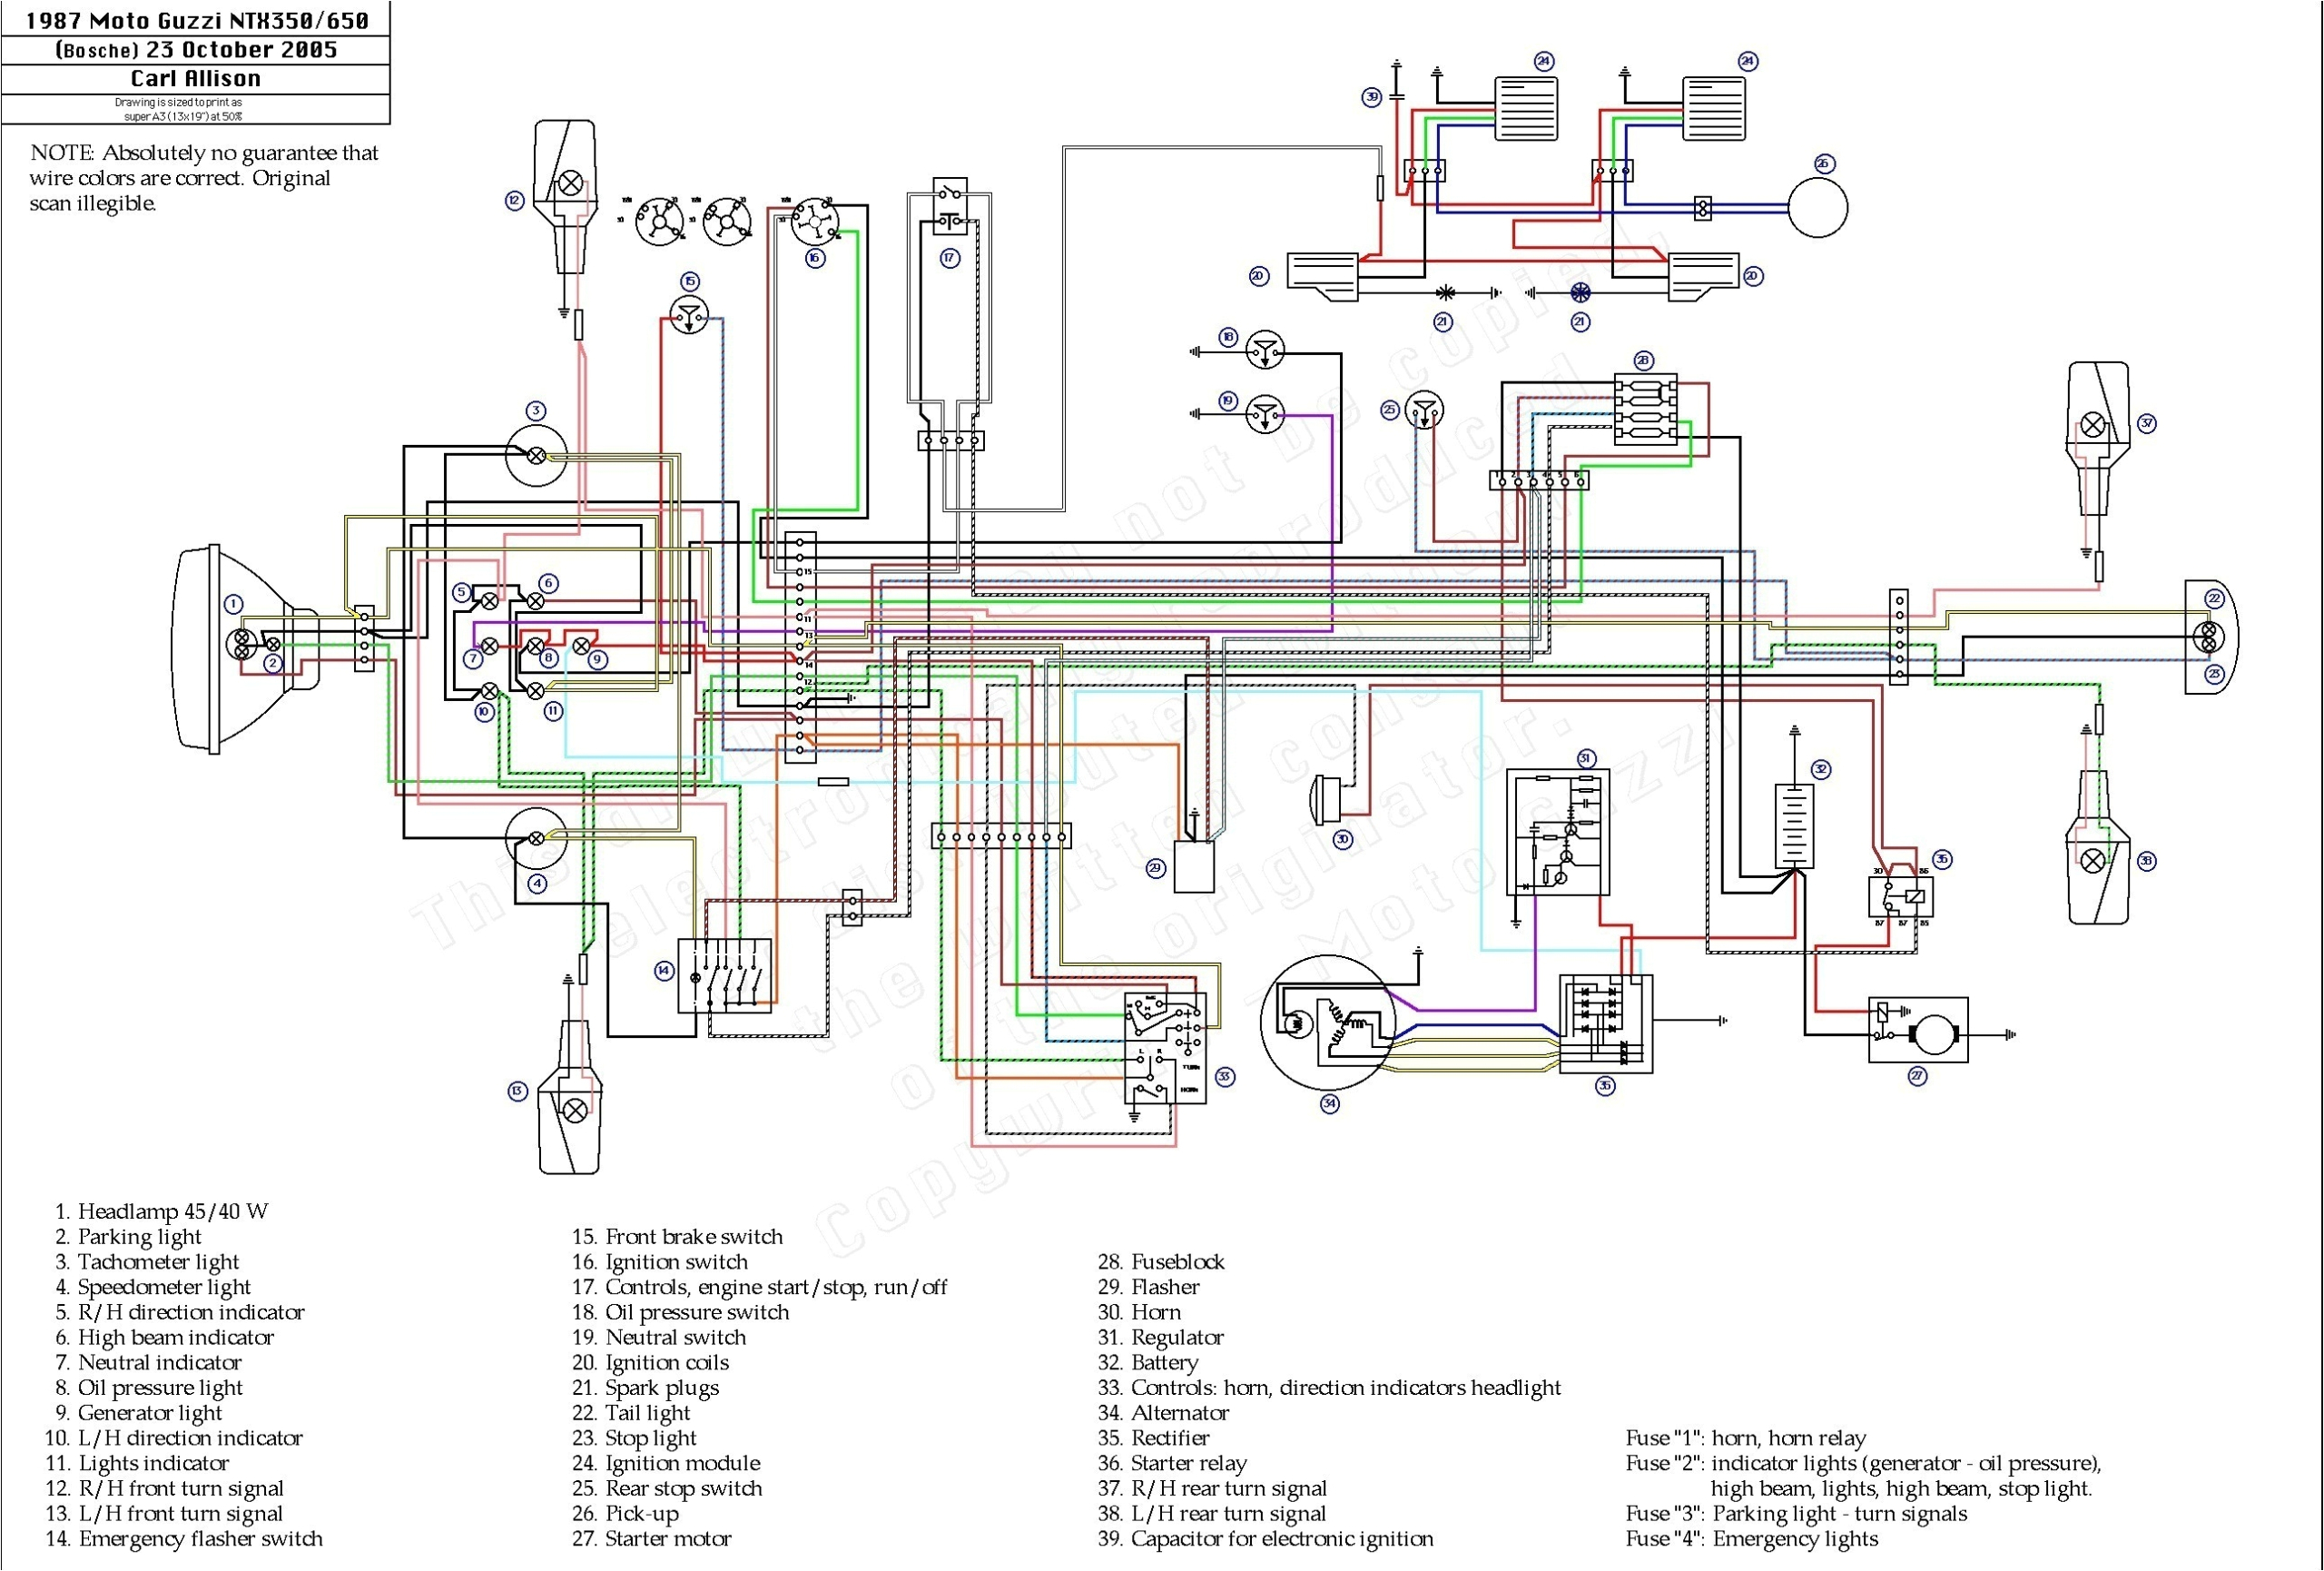 Panther 110 atv Wiring Diagram atv 110 Wiring Diagram Wiring Diagram Technic